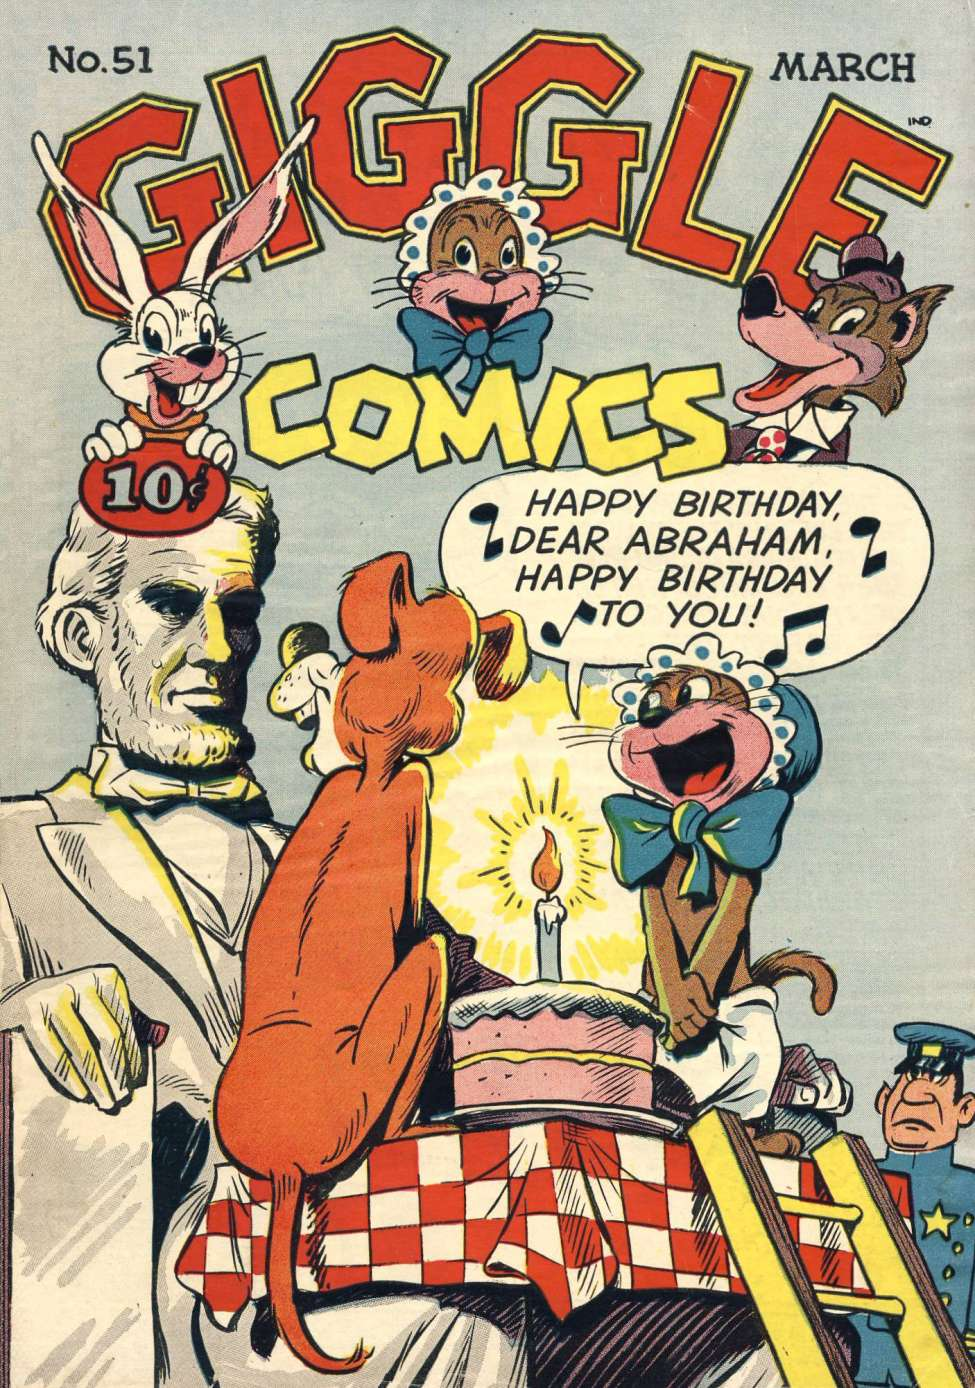 Comic Book Cover For Giggle Comics #51